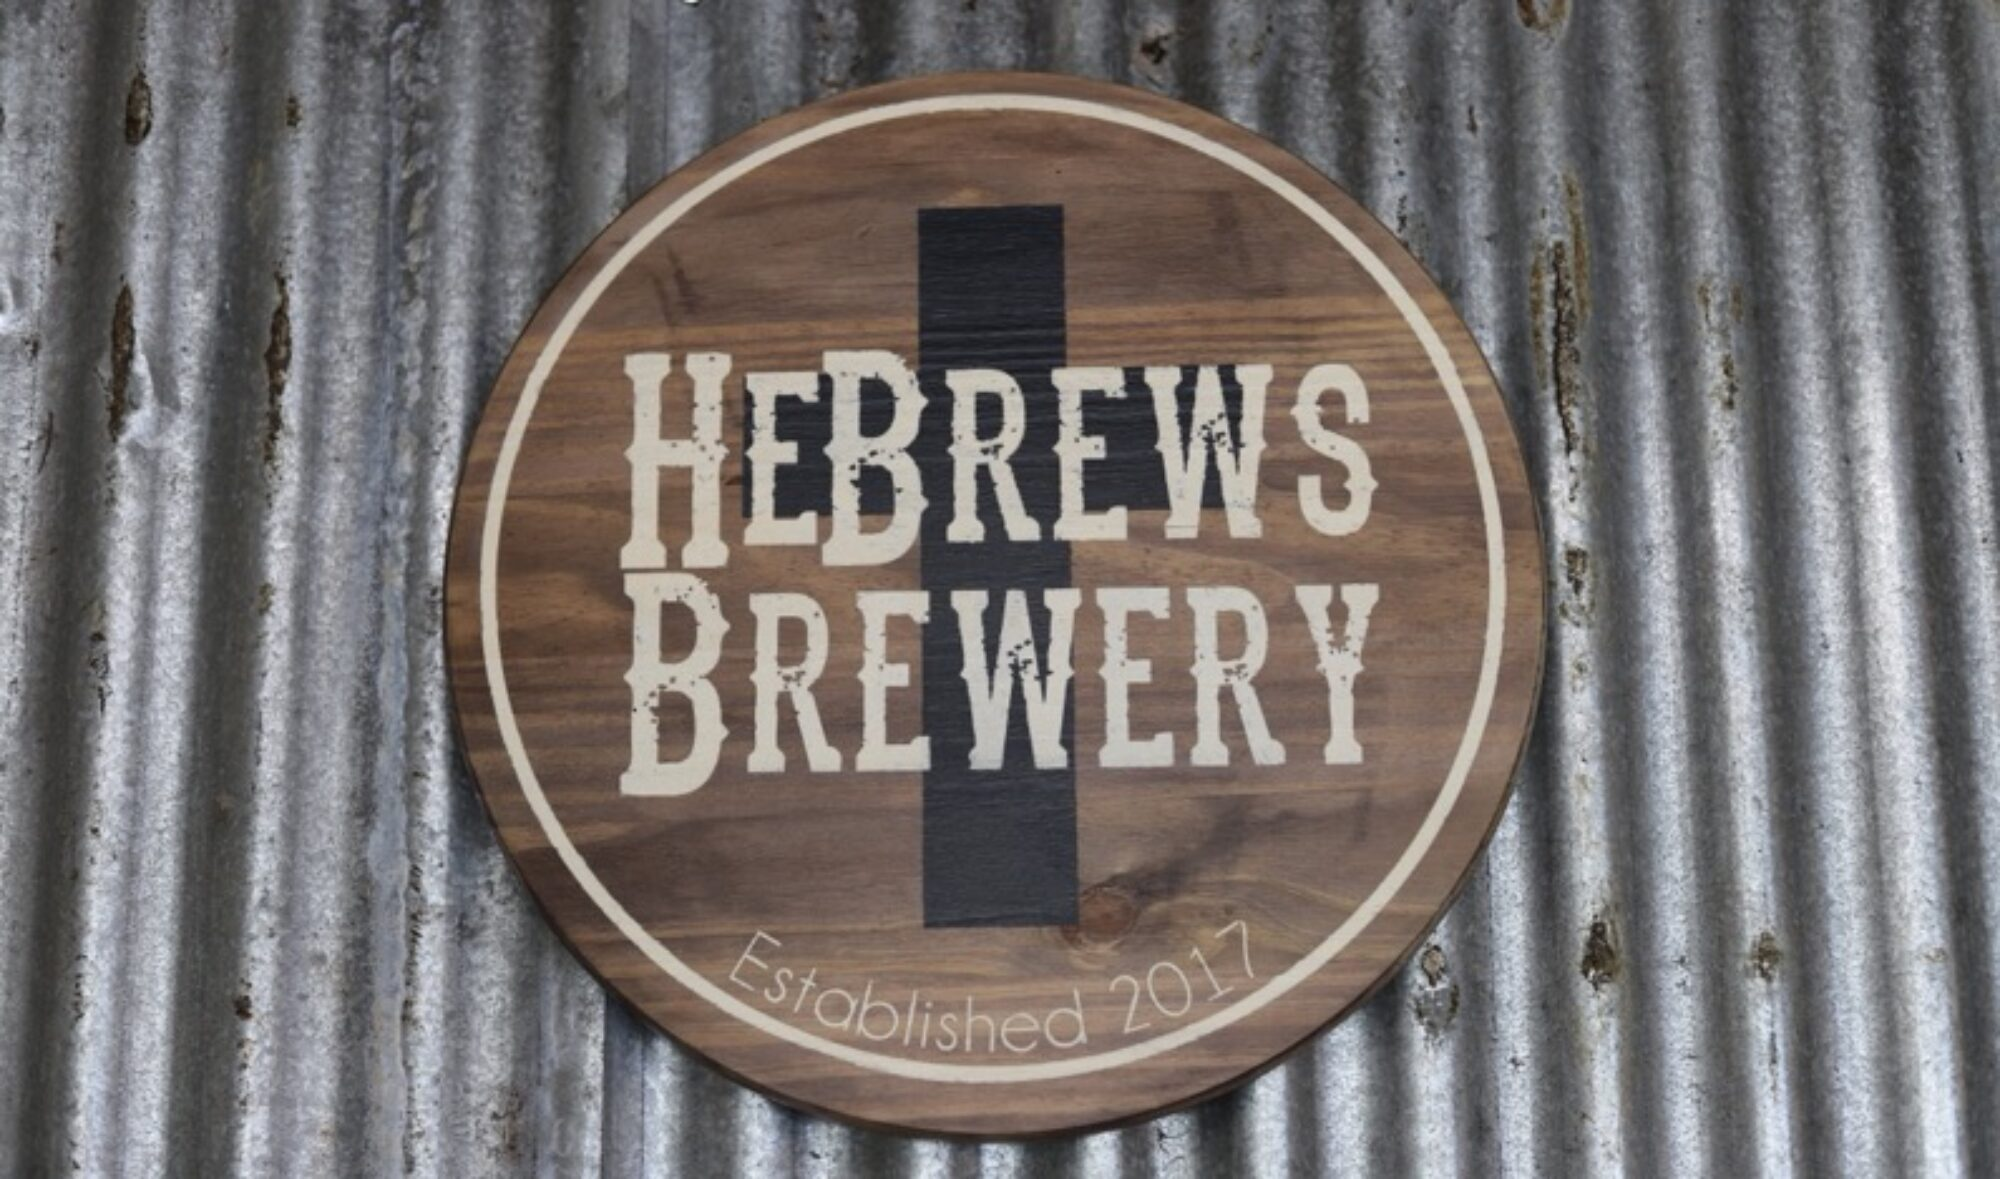 HeBrews Brewery